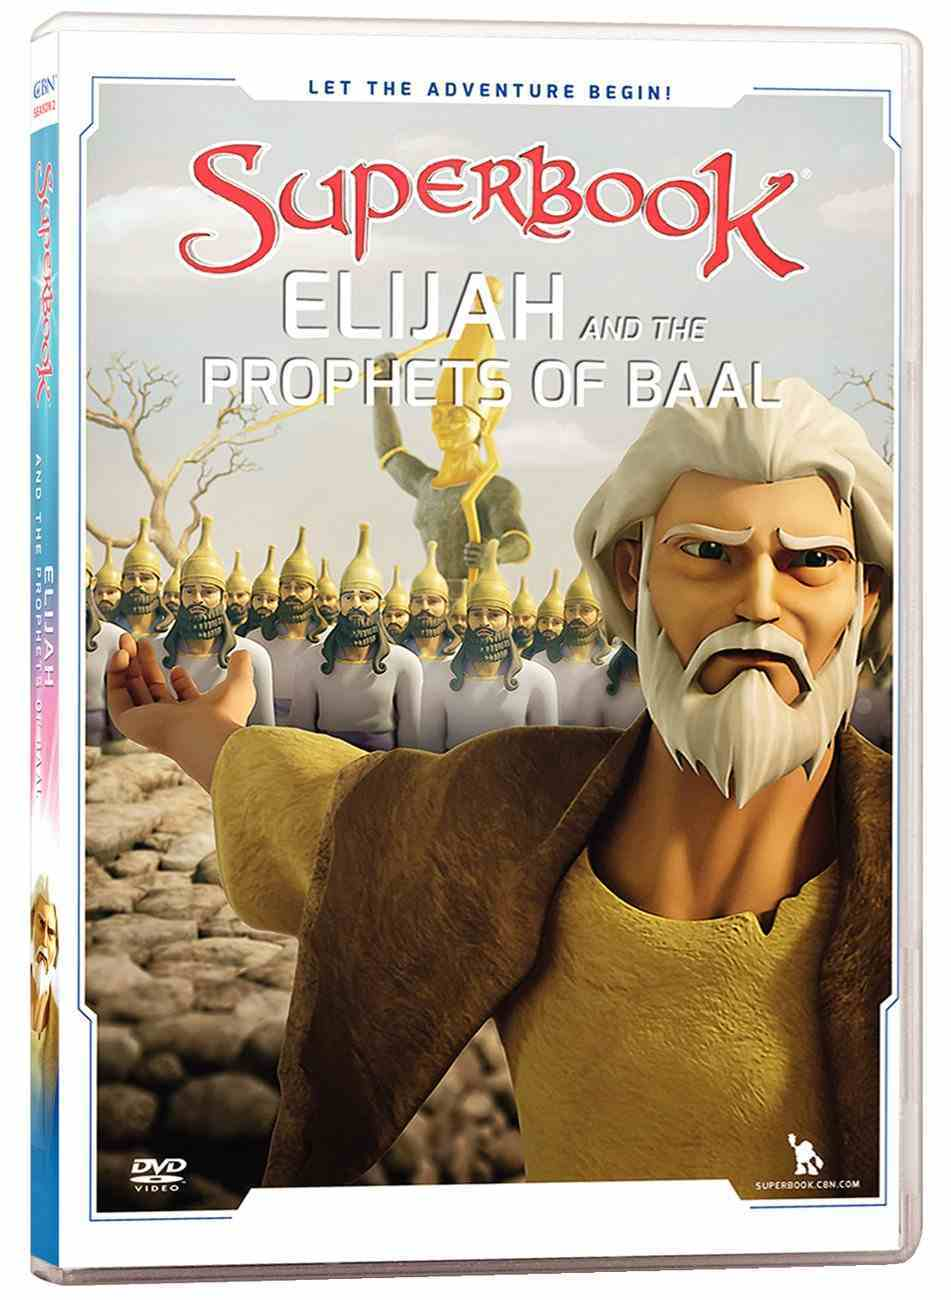 Elijah and the Prophets of Baal (#13 in Superbook Dvd Series Season 02) DVD